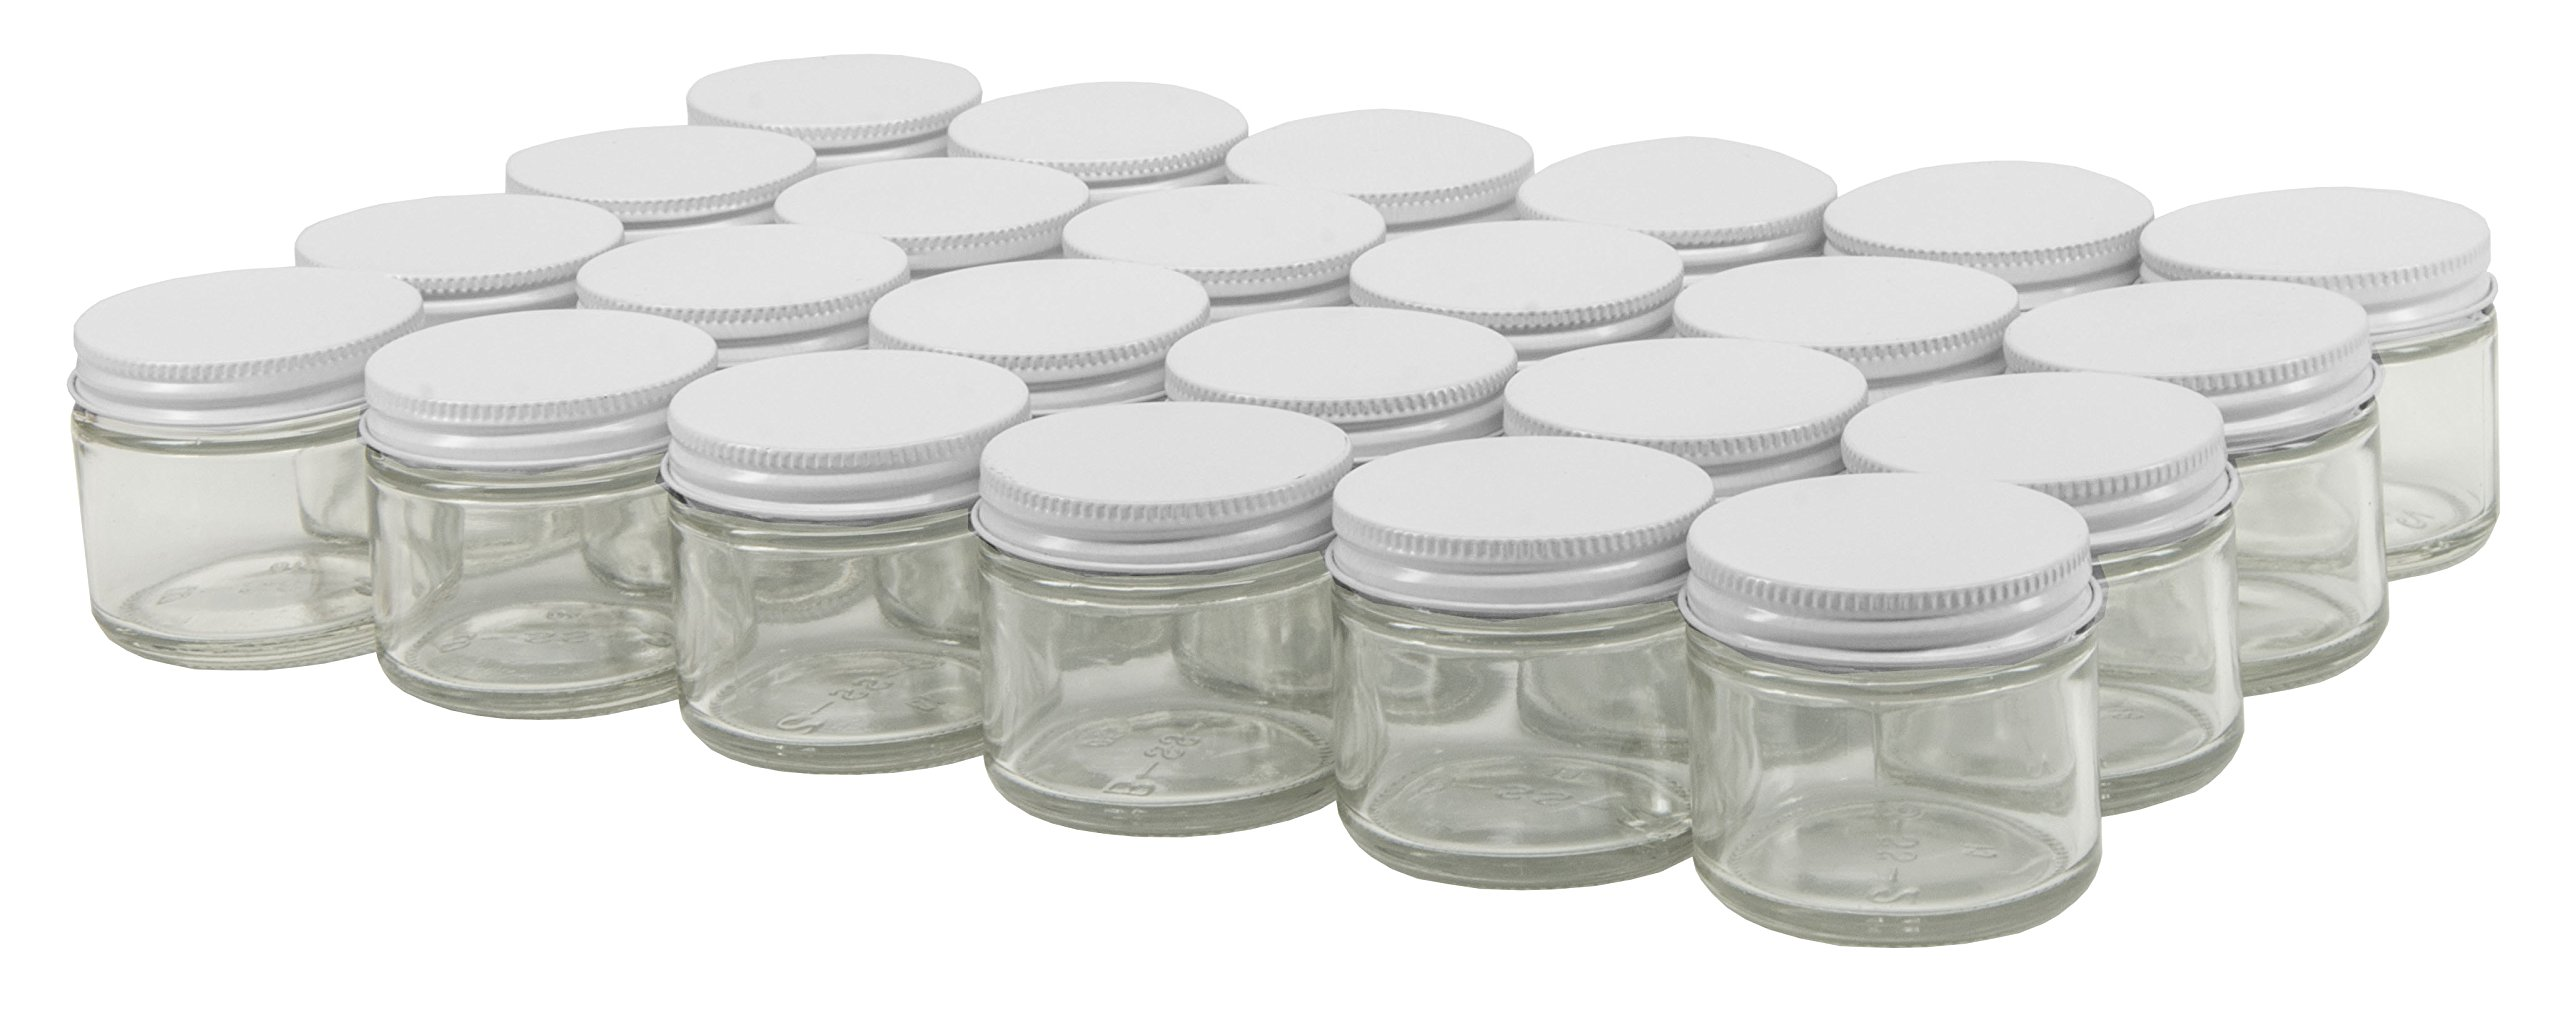 North Mountain Supply 2 Ounce Glass Straight Sided Spice/Canning Jars - With 53mm White Lids - Case of 24